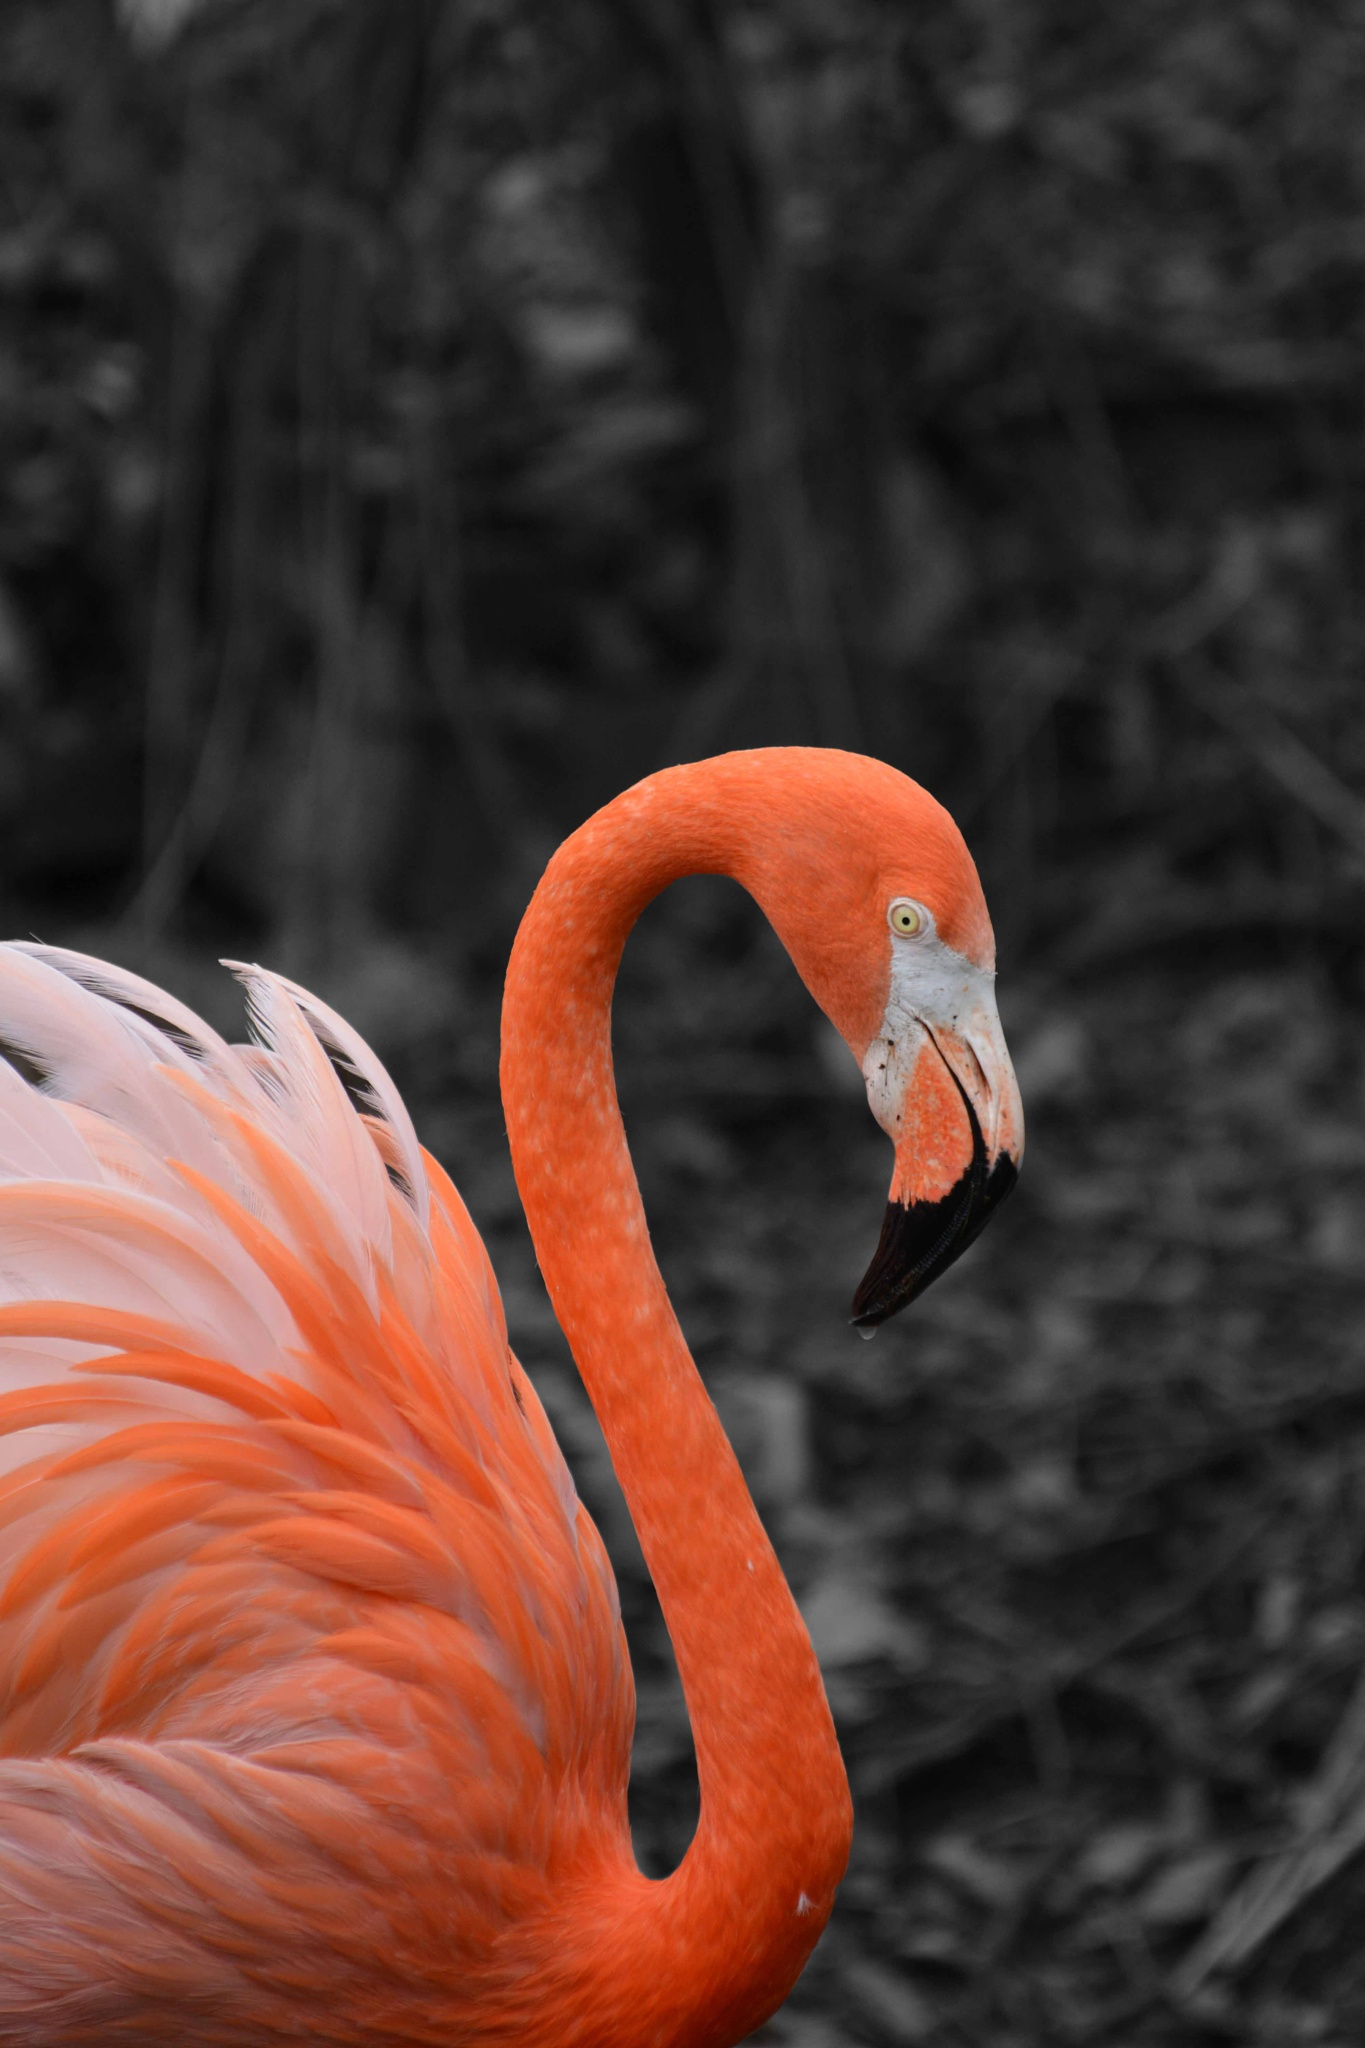 Flamingo by stacey legg